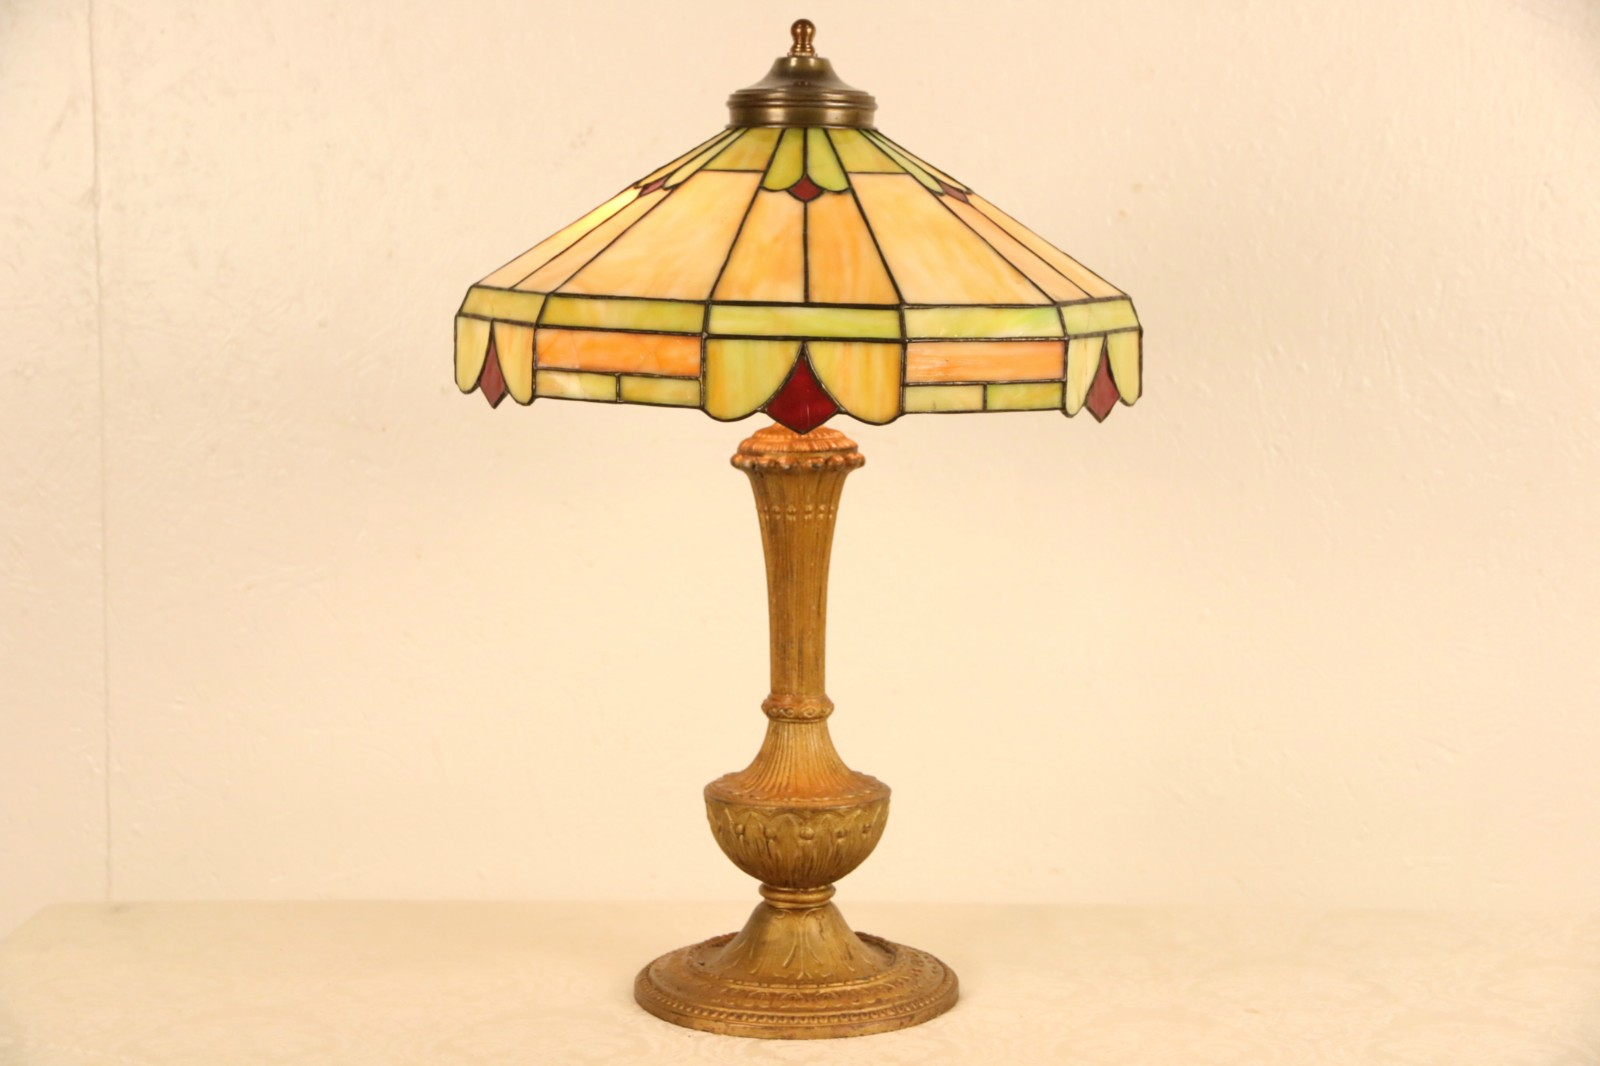 Sold Lamp With Leaded Stained Glass Shade 1915 Antique